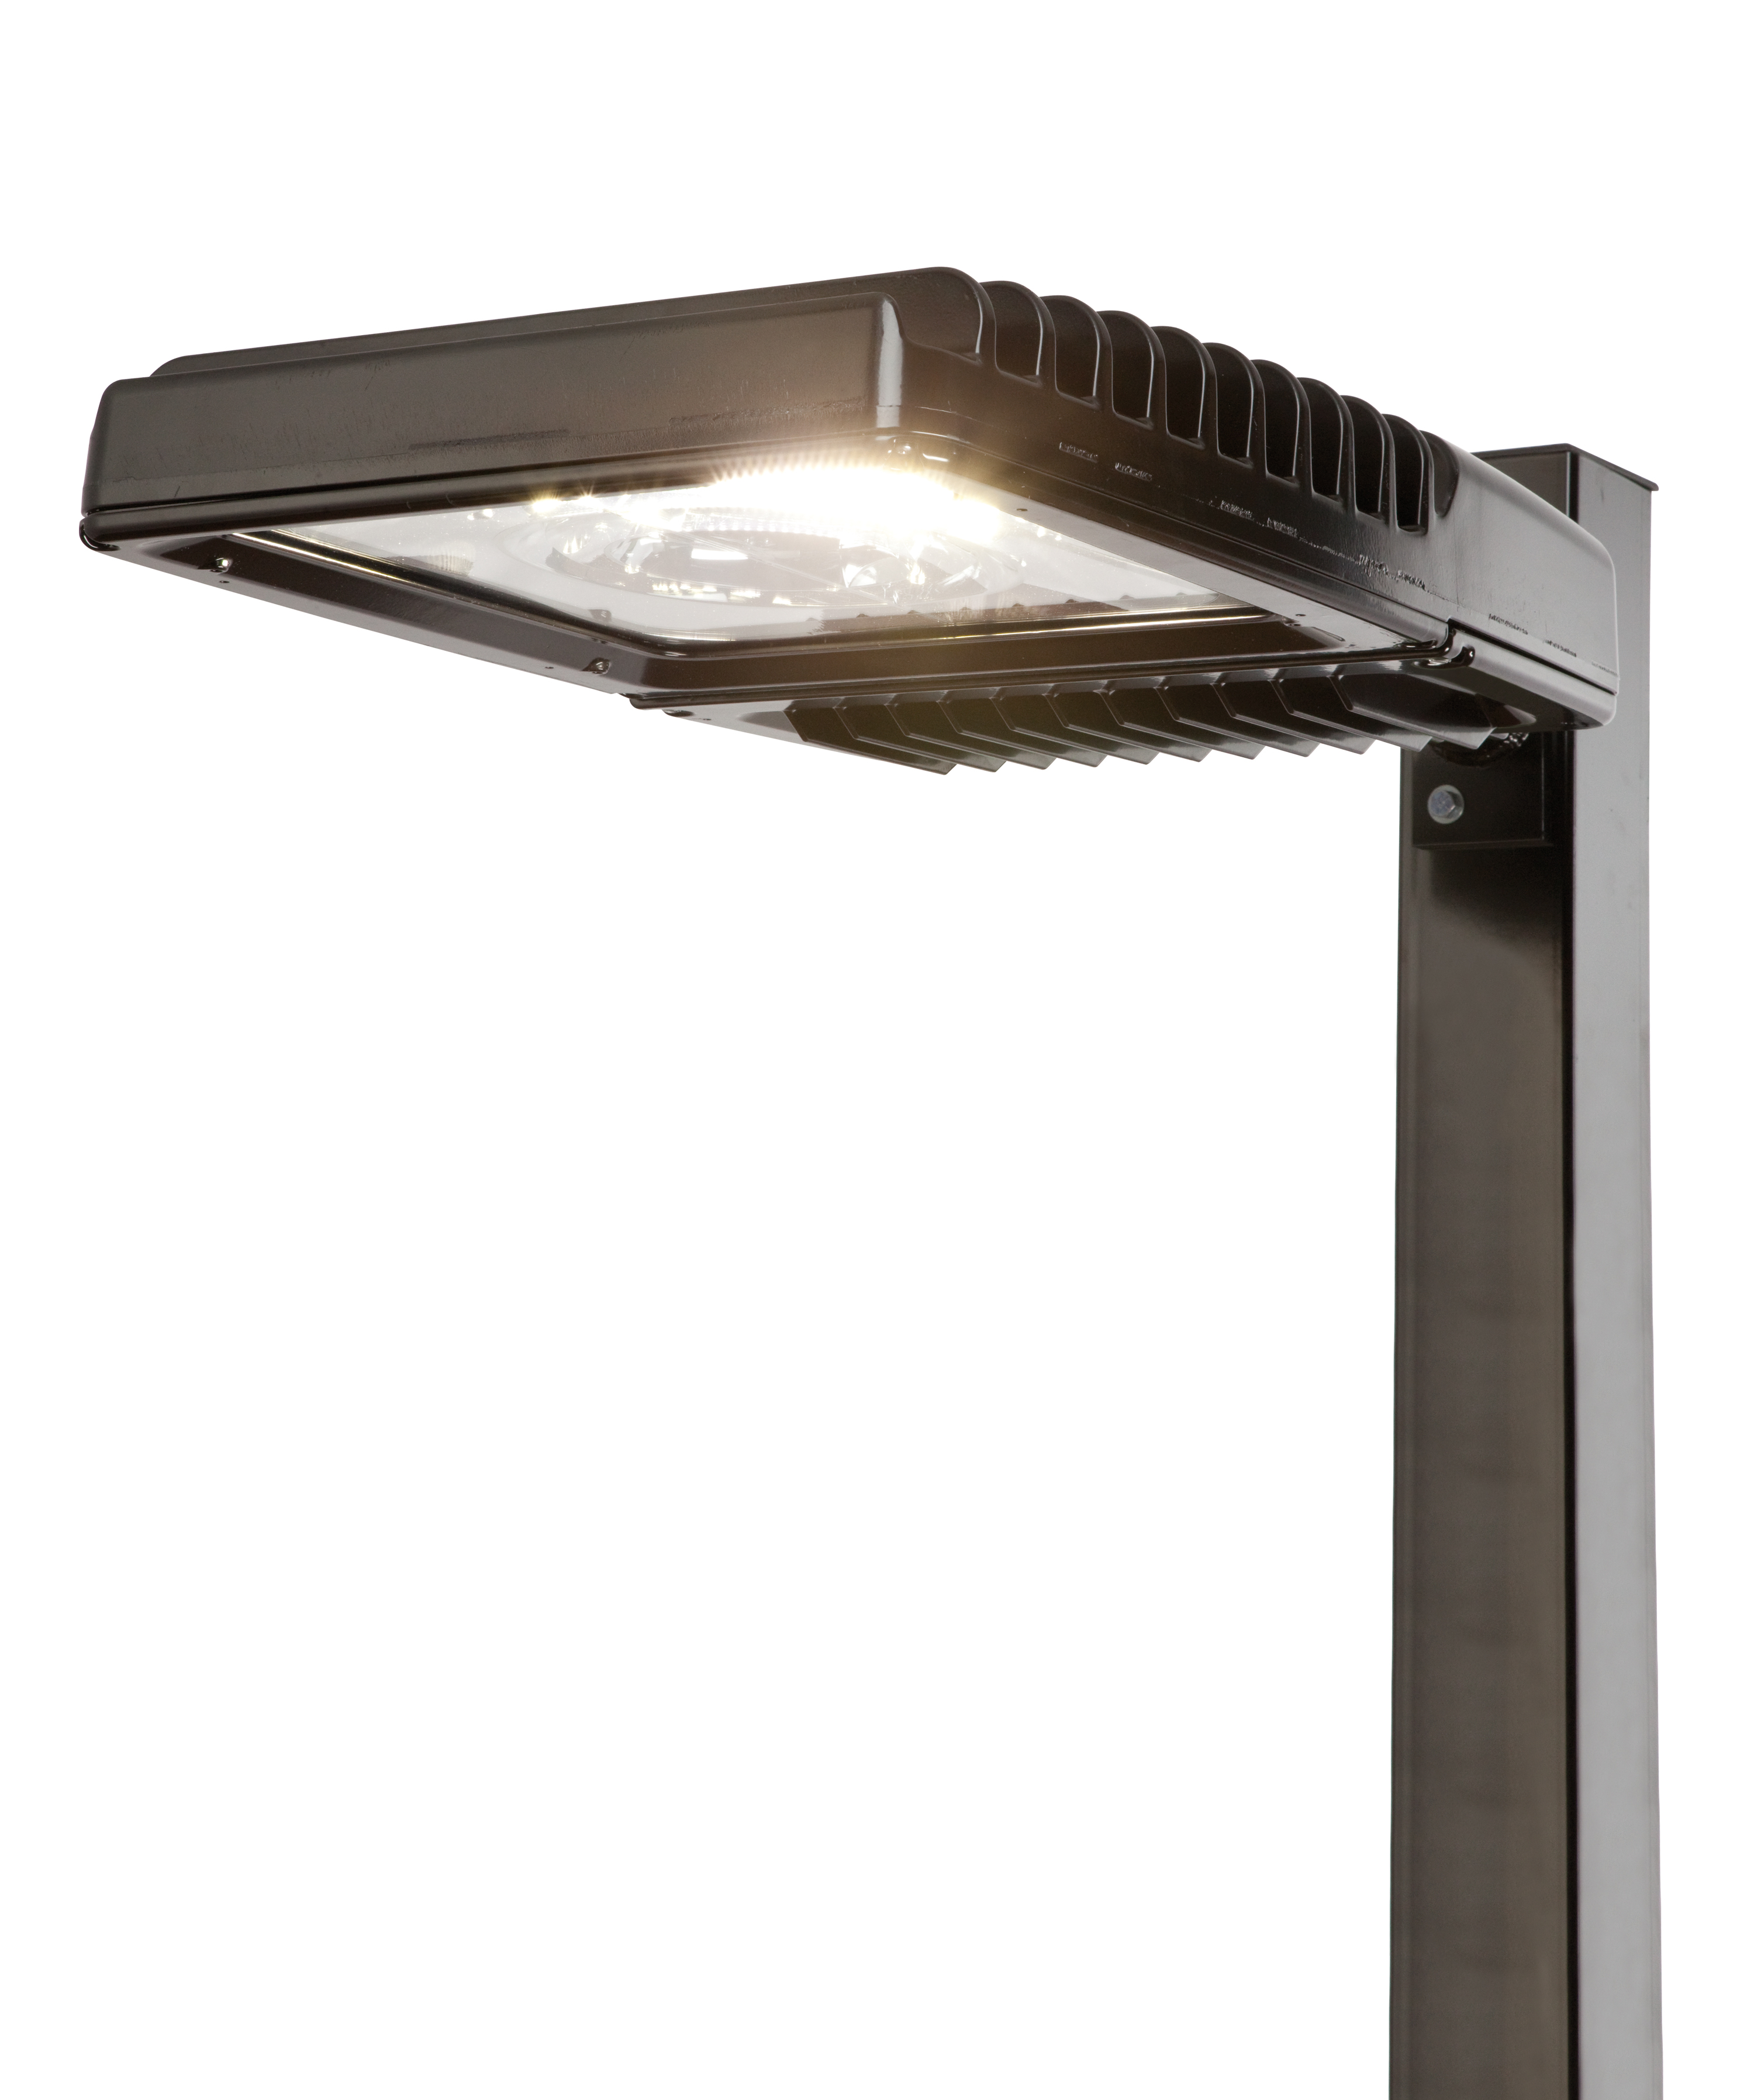 ge s scalable led area lights bring lots of options for parking lots. Black Bedroom Furniture Sets. Home Design Ideas